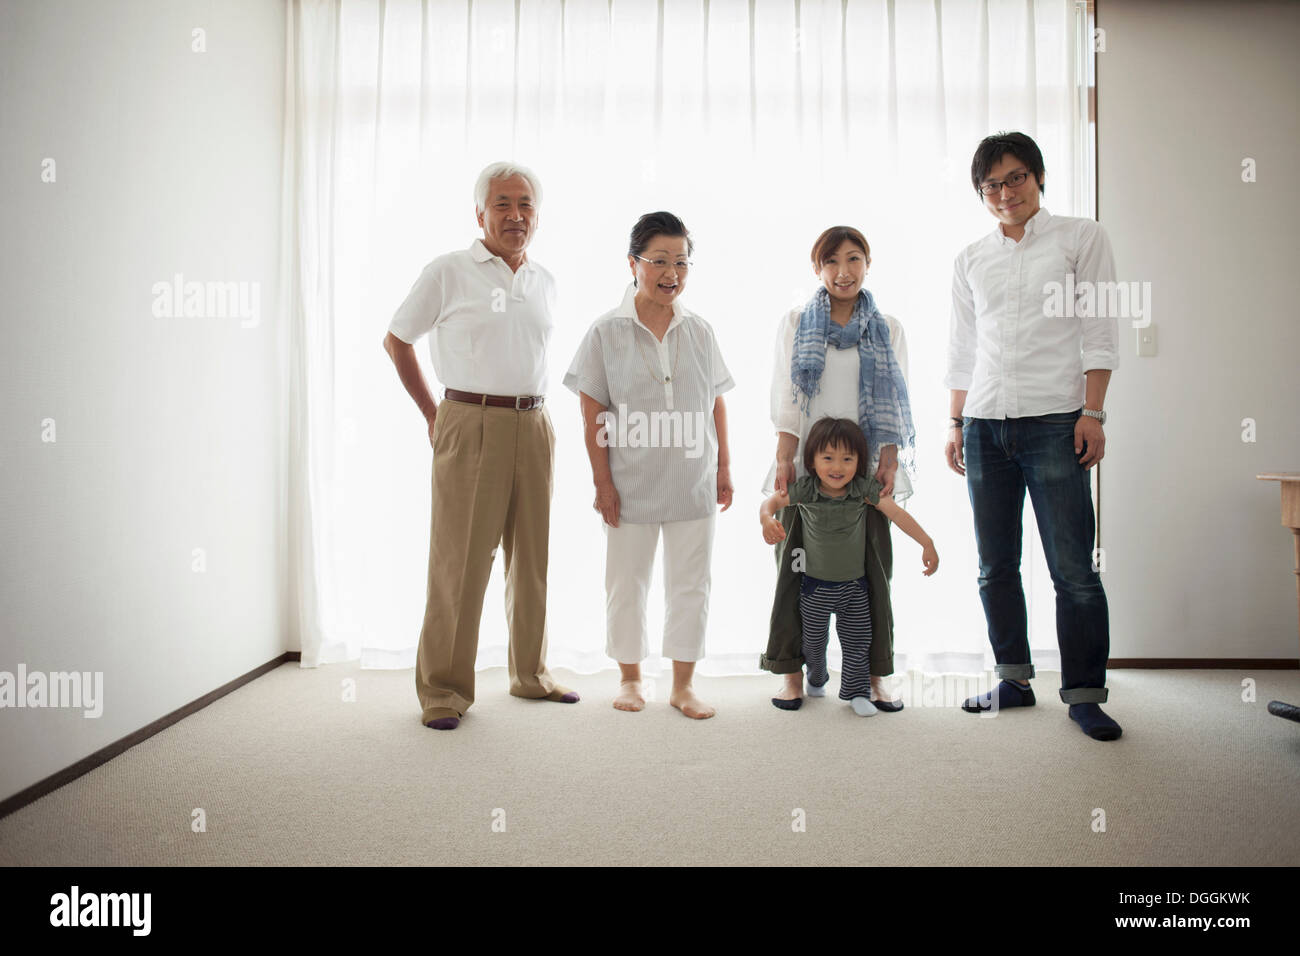 Three generation family standing by window, portrait - Stock Image